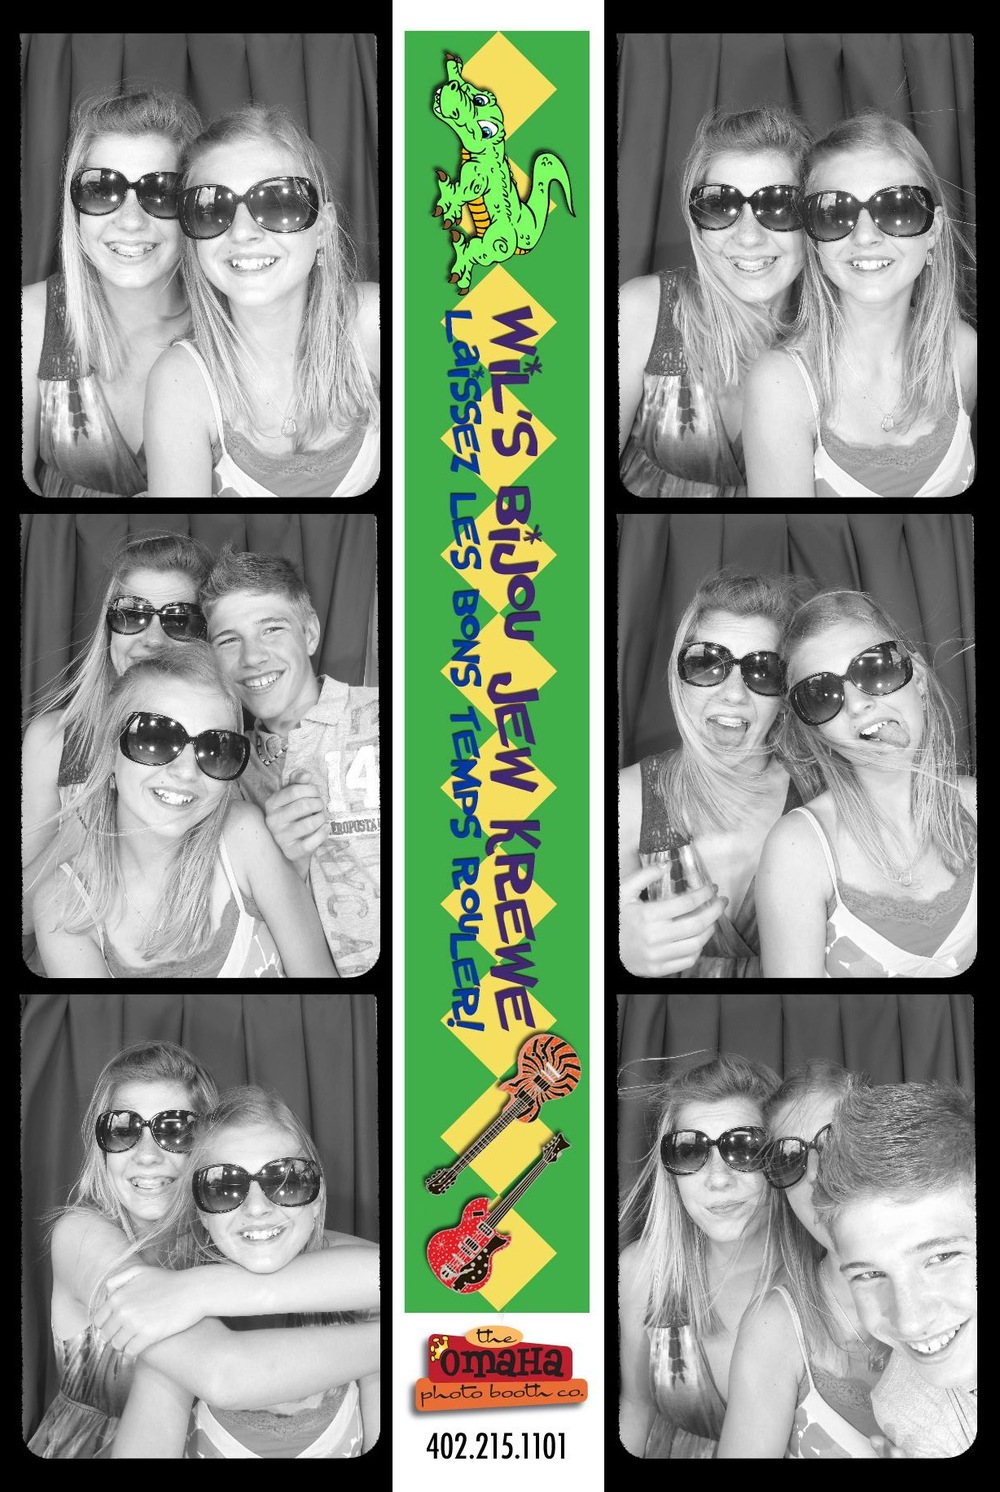 Omaha Photo Booth Rental Bar and Bat Mitzvah